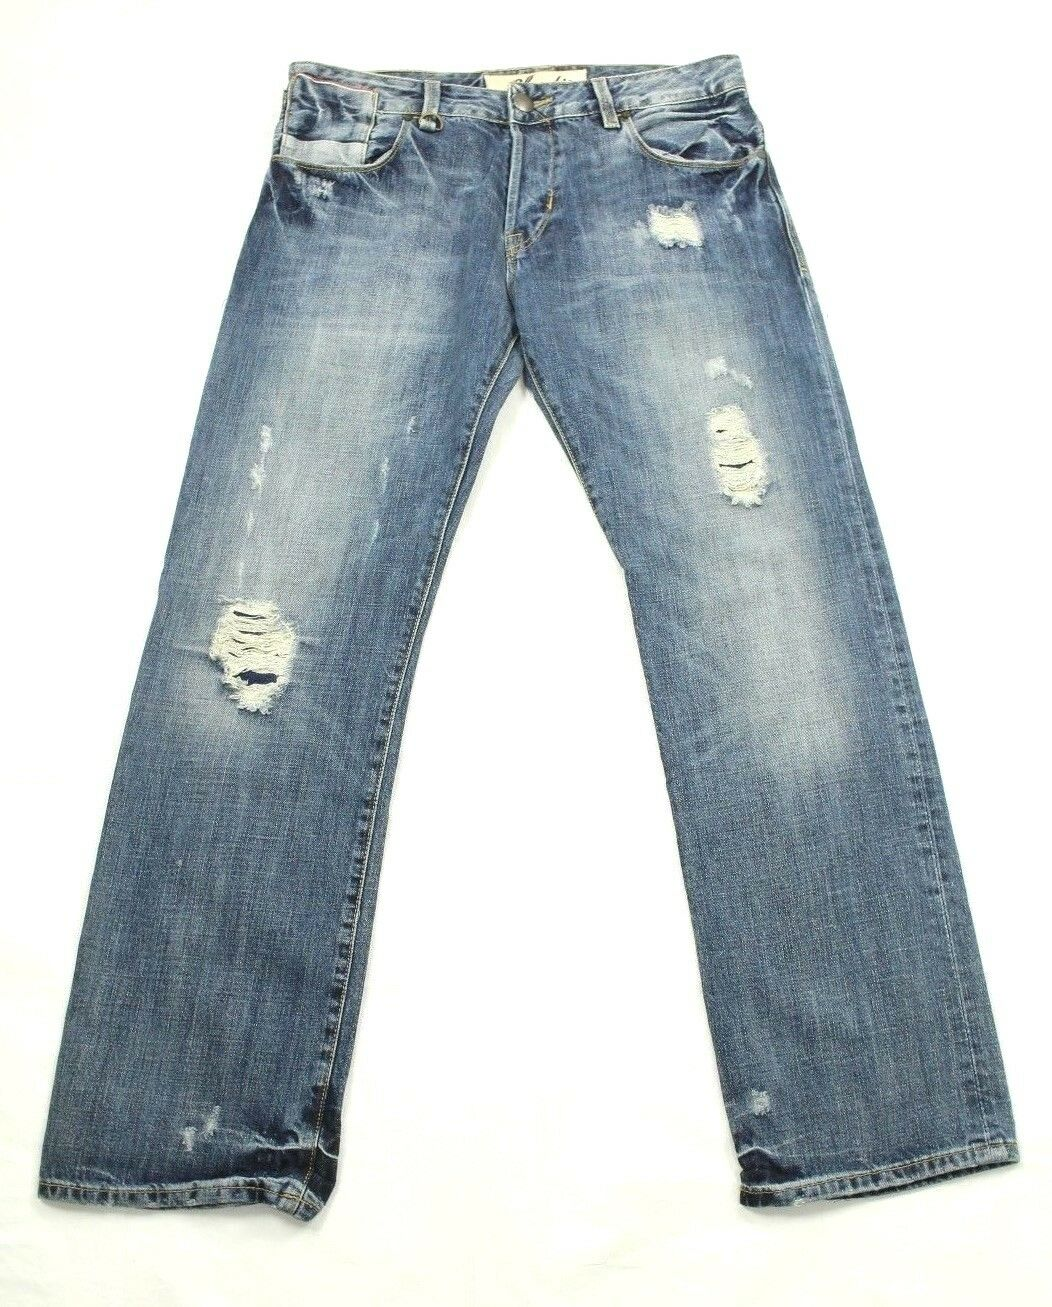 Claudio Milano Herren Jeans Distressed Gerade Jeans     | Schöne Kunst